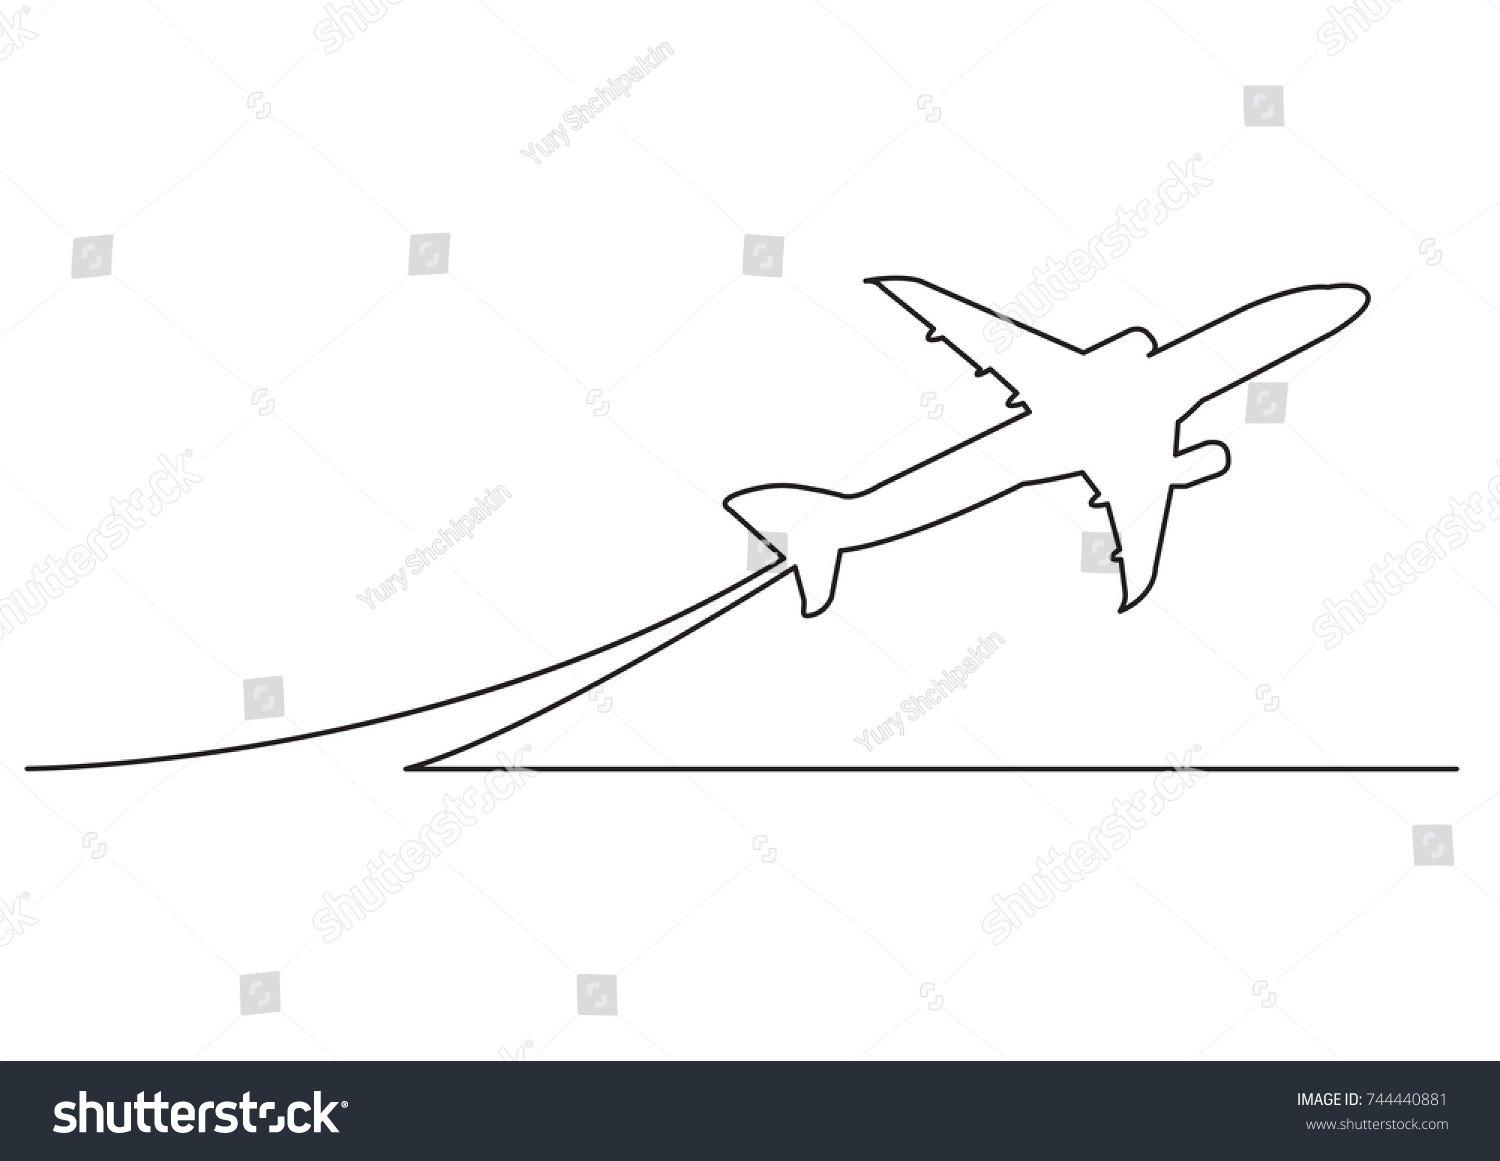 One Line Drawing Of Isolated Vector Object